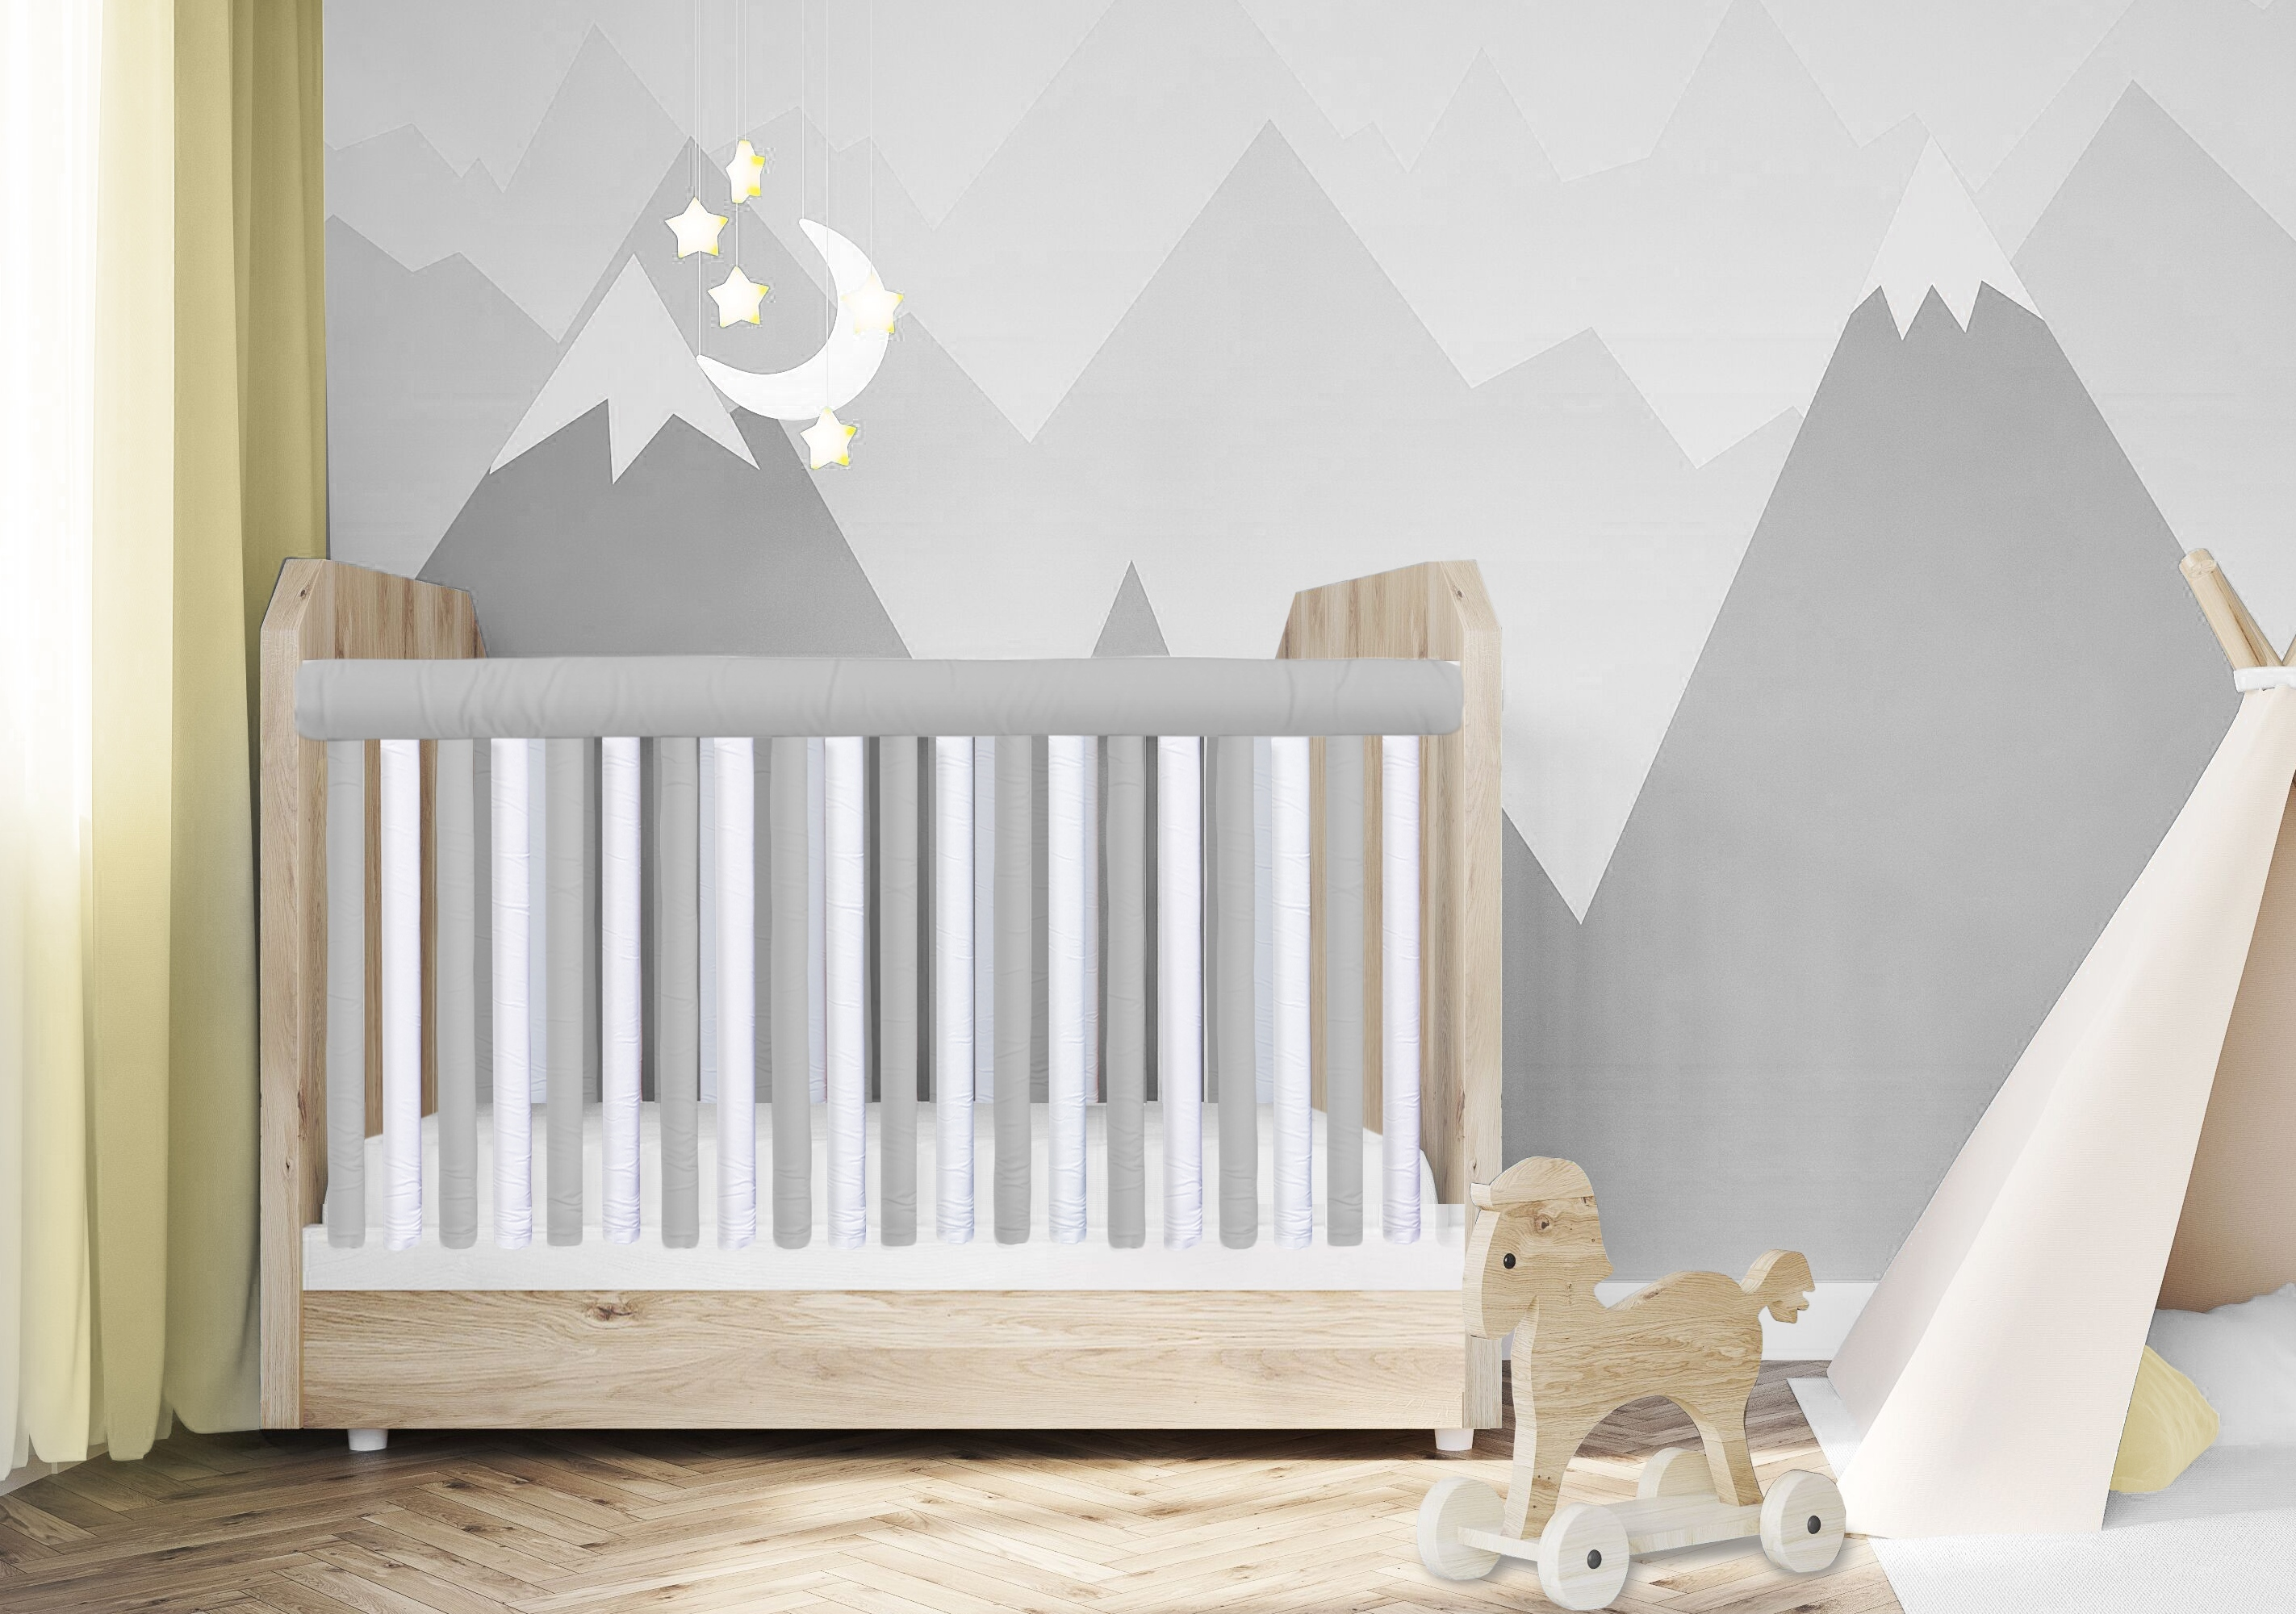 Go Mama Go Designs Pure Safety Vertical Crib Liners Exempt From New York State S Ban On Traditional Crib Bumpers Business Wire